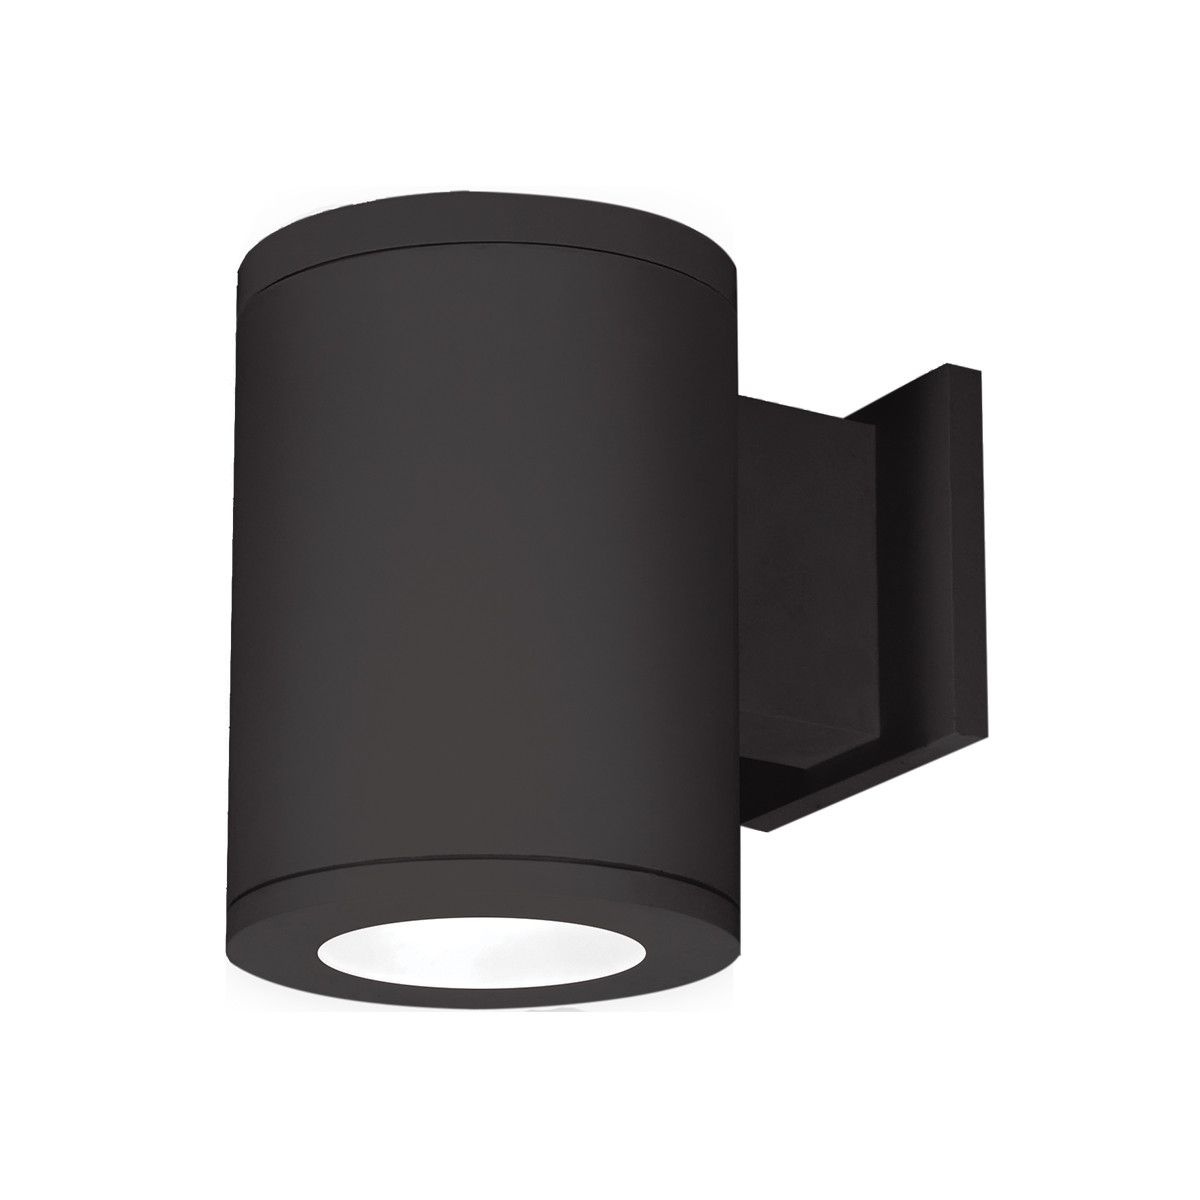 Tube deller led armed sconce products pinterest lighting wall